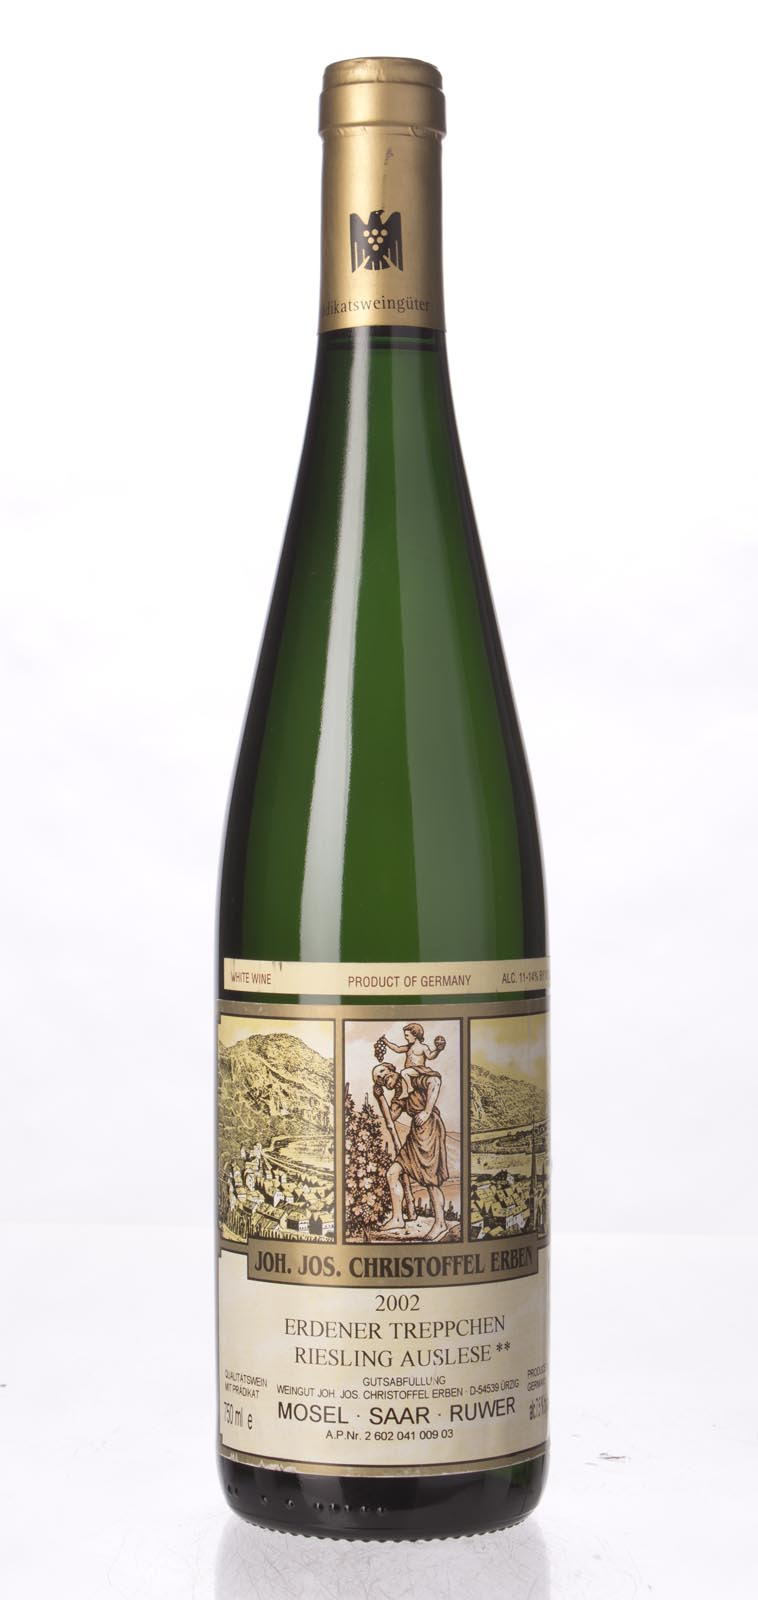 J. J. Christoffel Erdener Treppchen Riesling Auslese** Gold Capsule 2002, 750mL () from The BPW - Merchants of rare and fine wines.